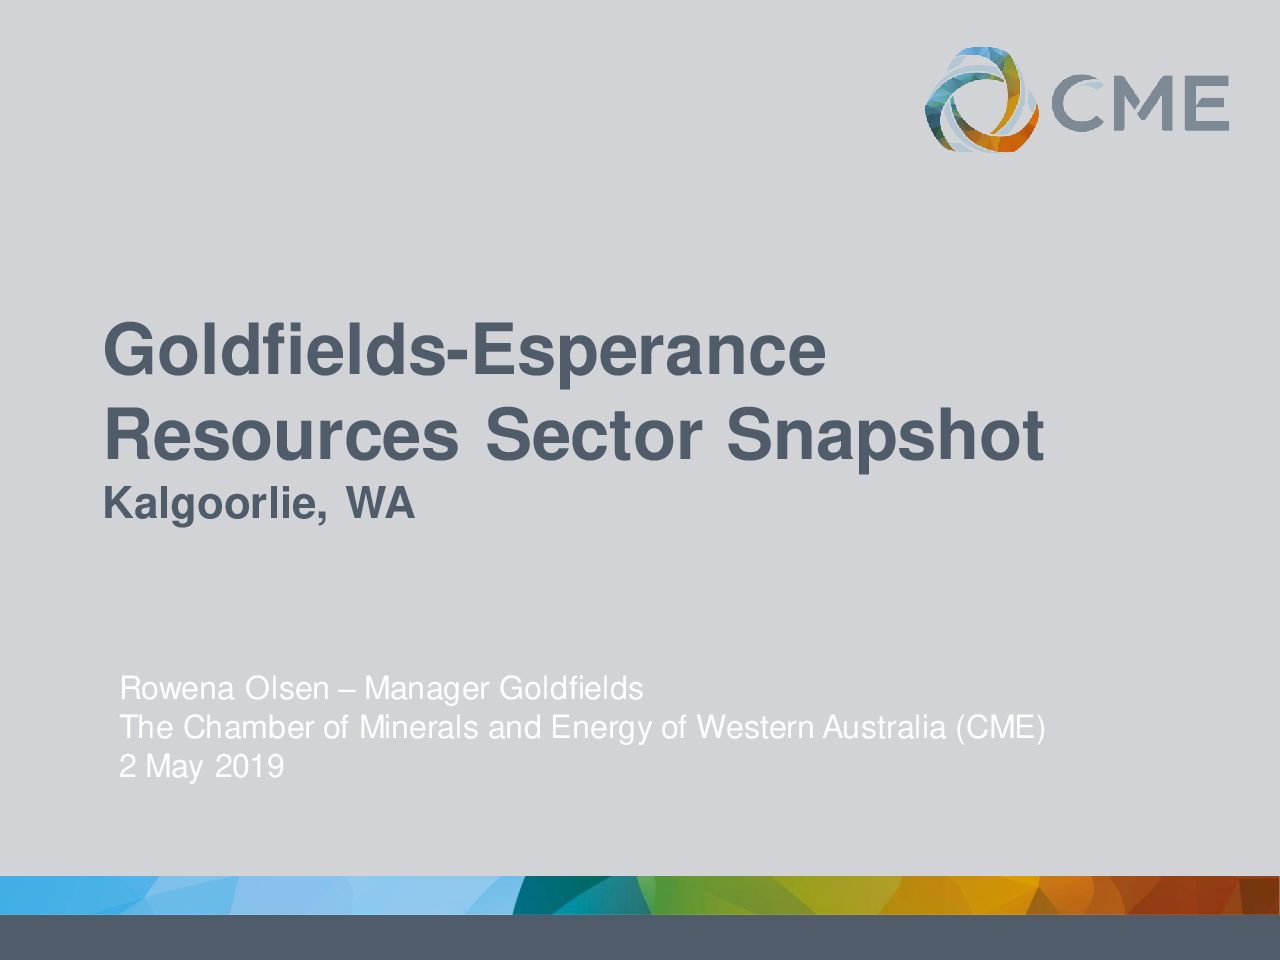 Goldfields-Esperance Resources Sector Snapshot